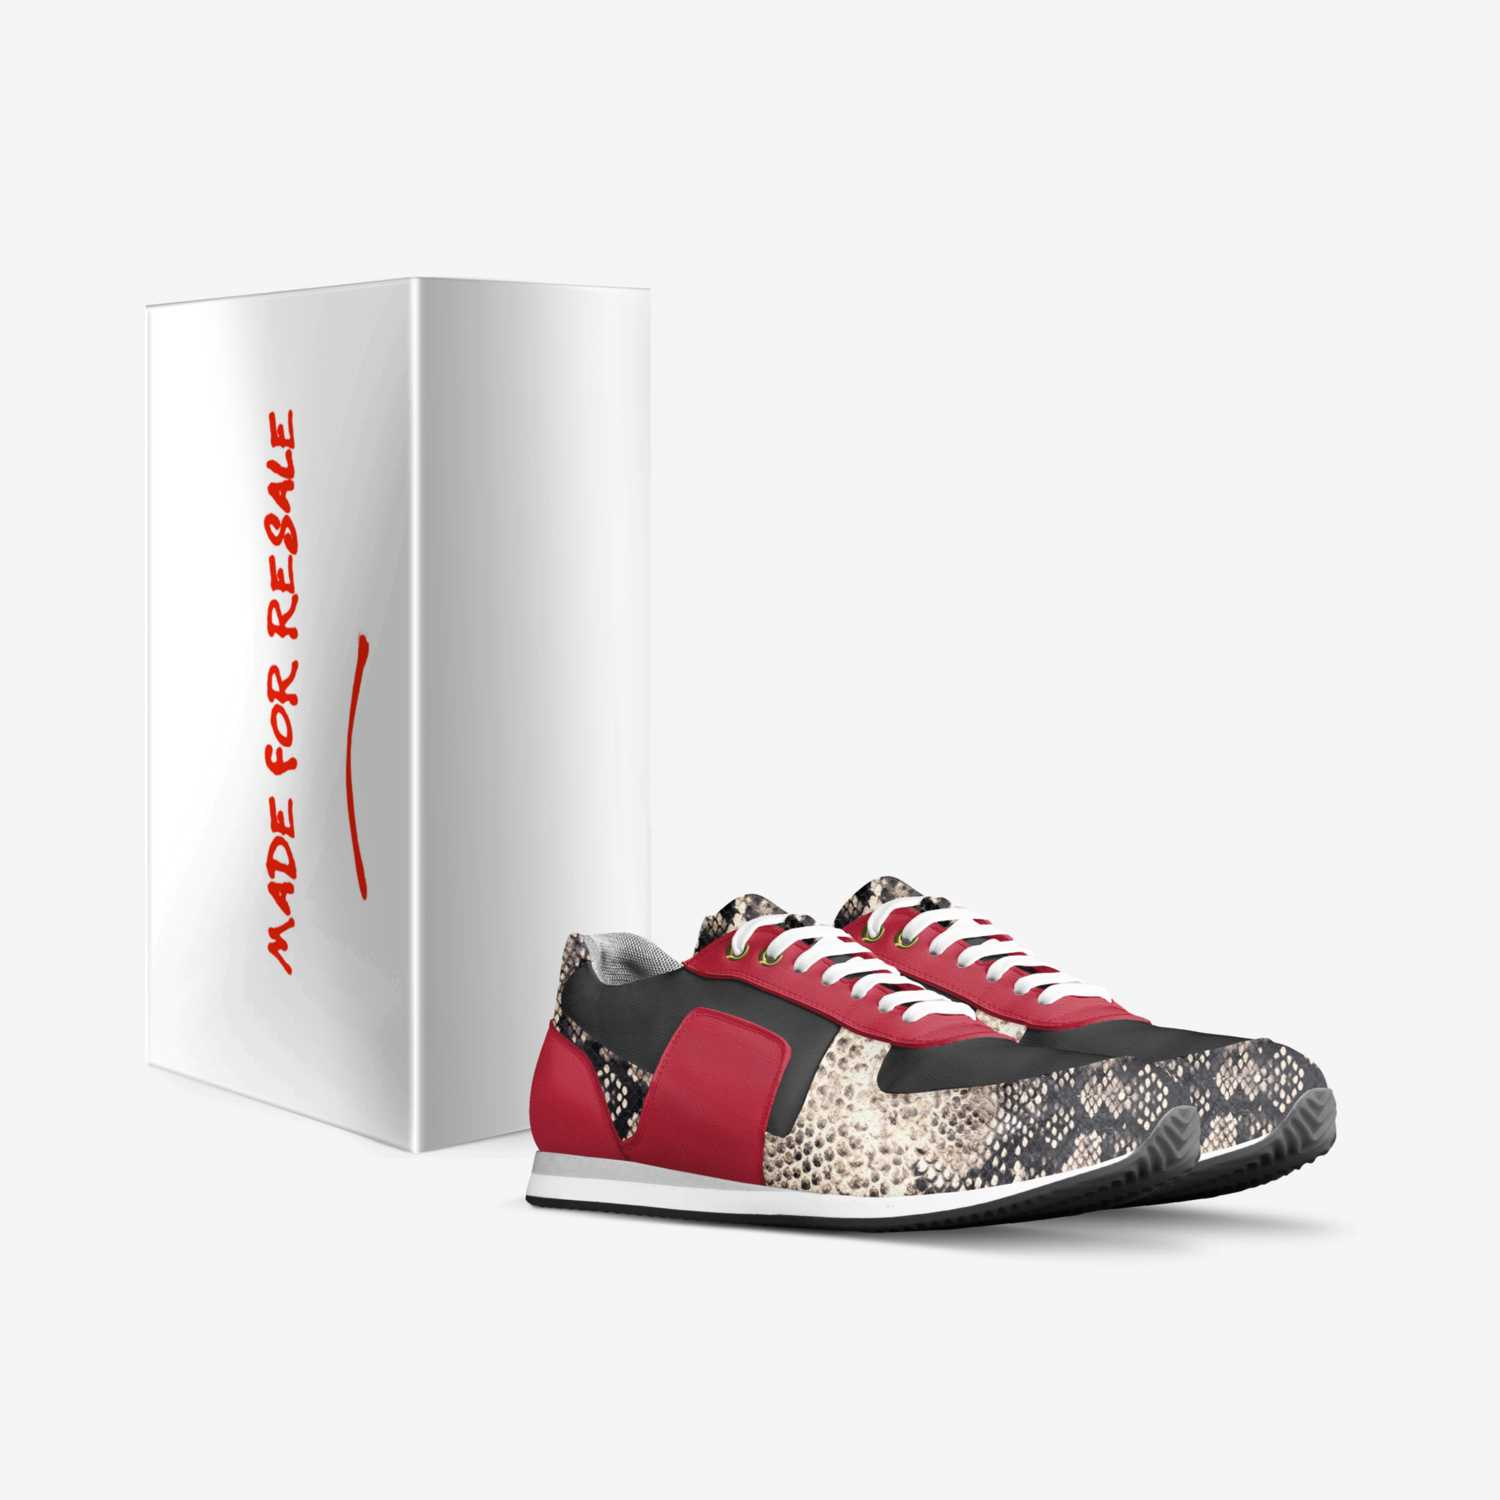 Art custom made in Italy shoes by Aaron Turner | Box view